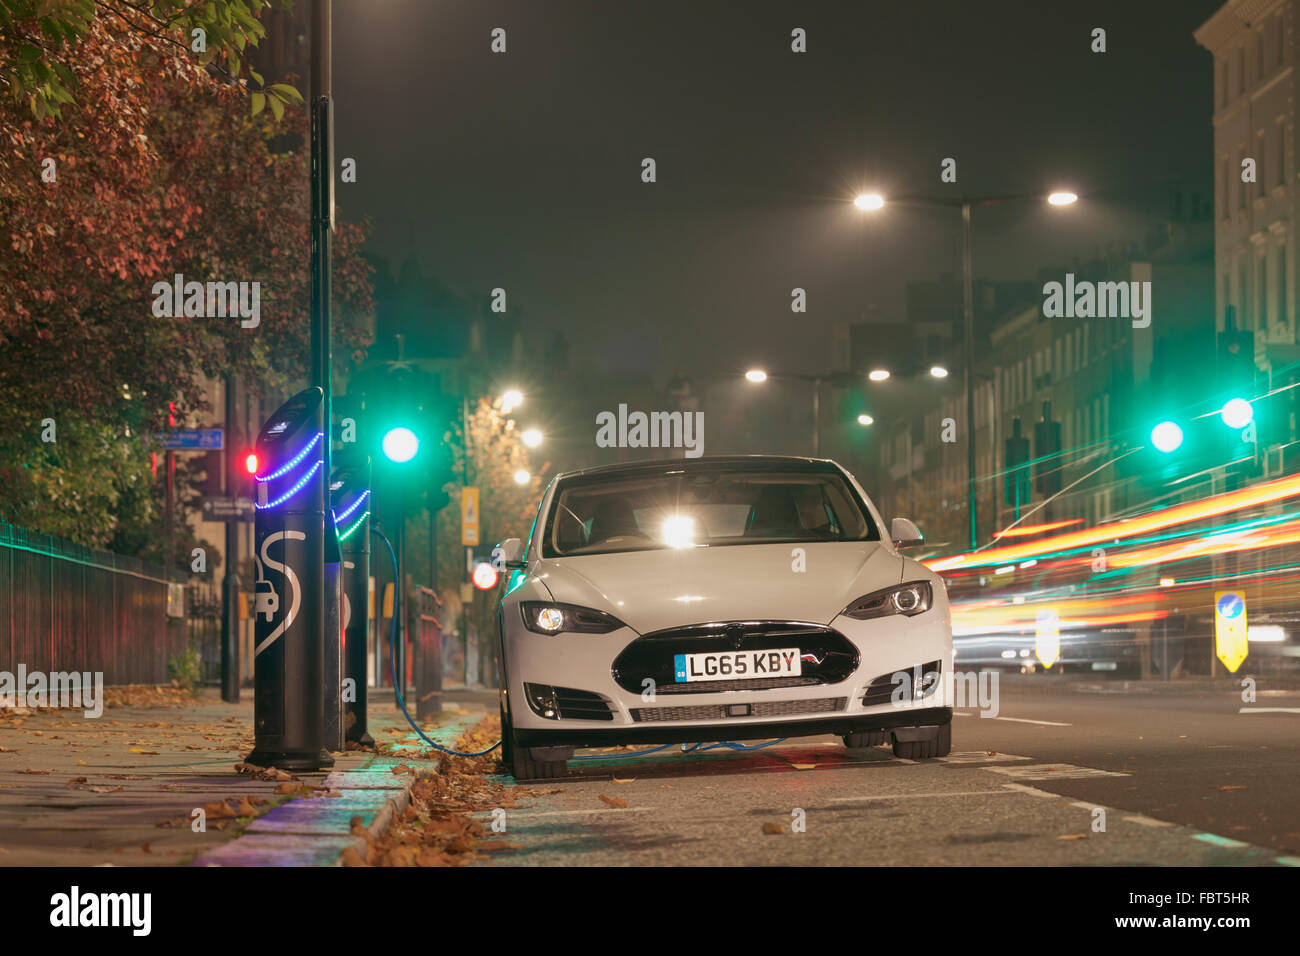 Tesla luxury electric car at a charging point in Kensington, London - Stock Image